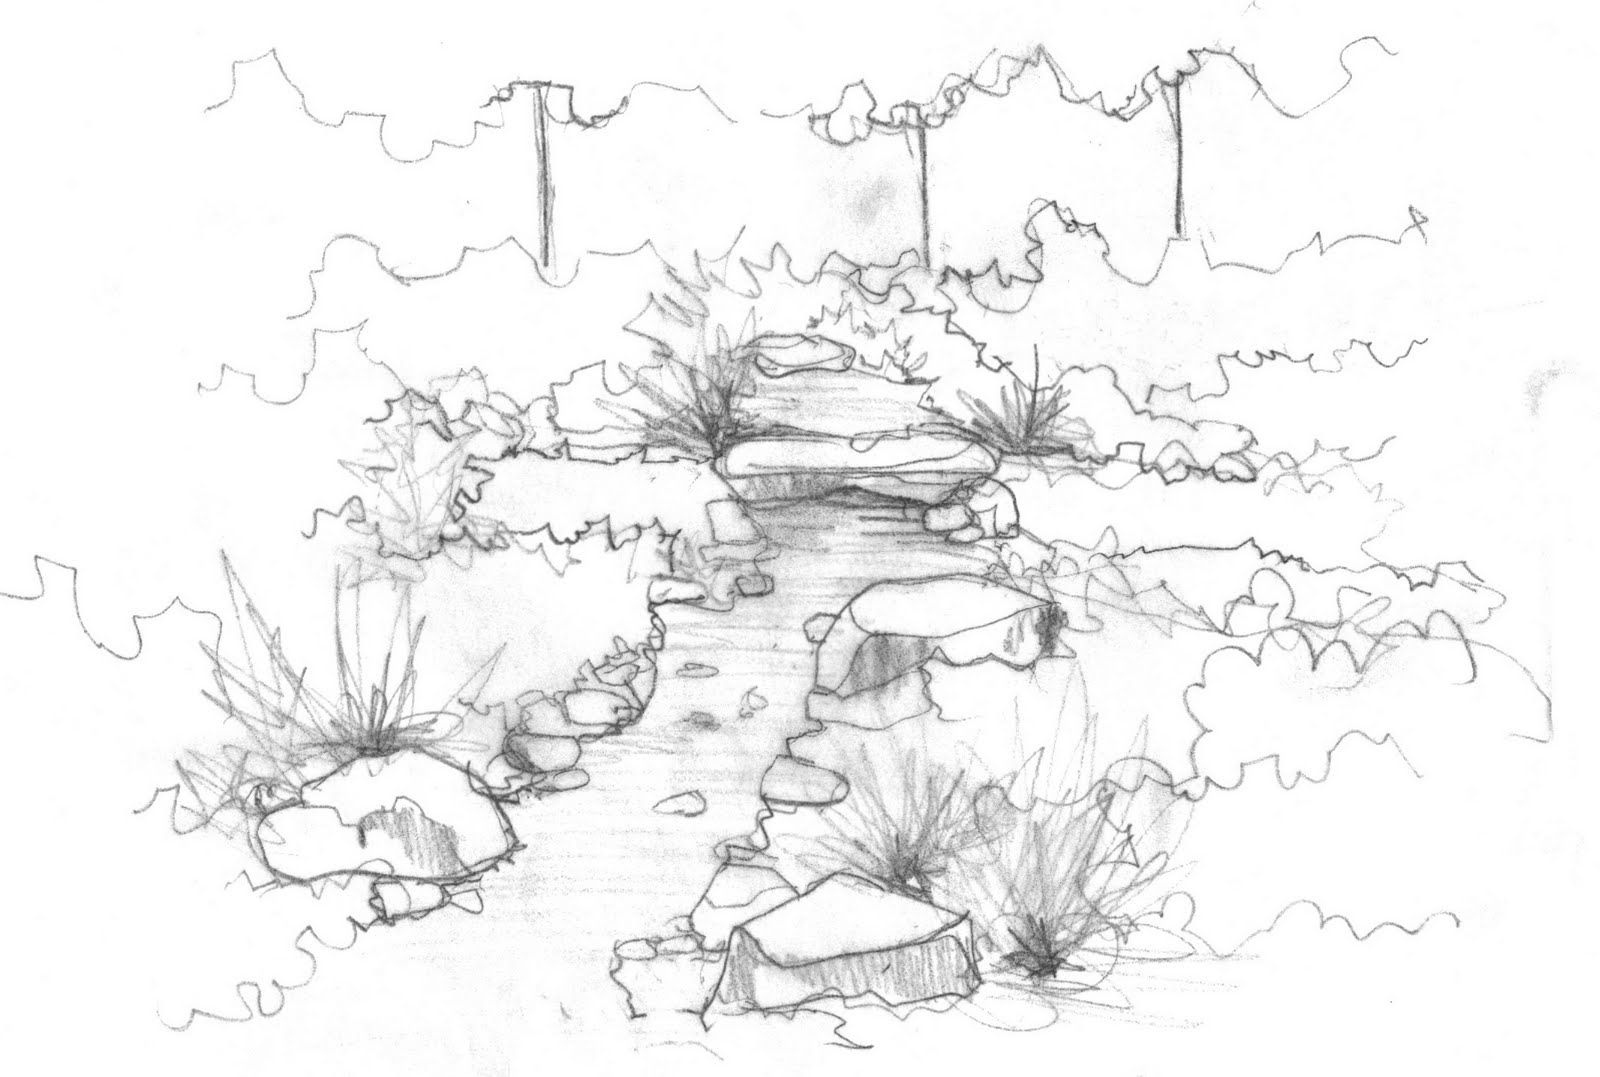 Drought Tolerant Dry Creek Bed Sketch Coloring Page